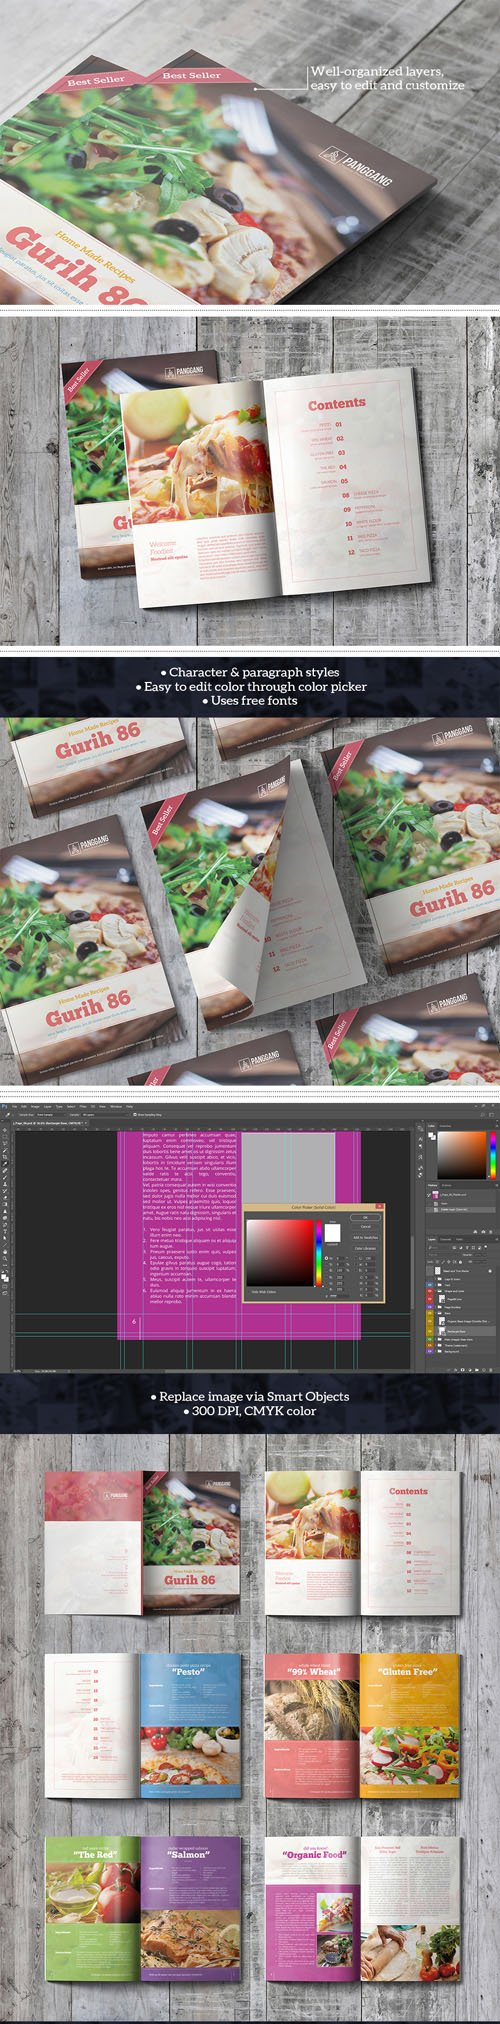 Gurih Cookbook PSD Template